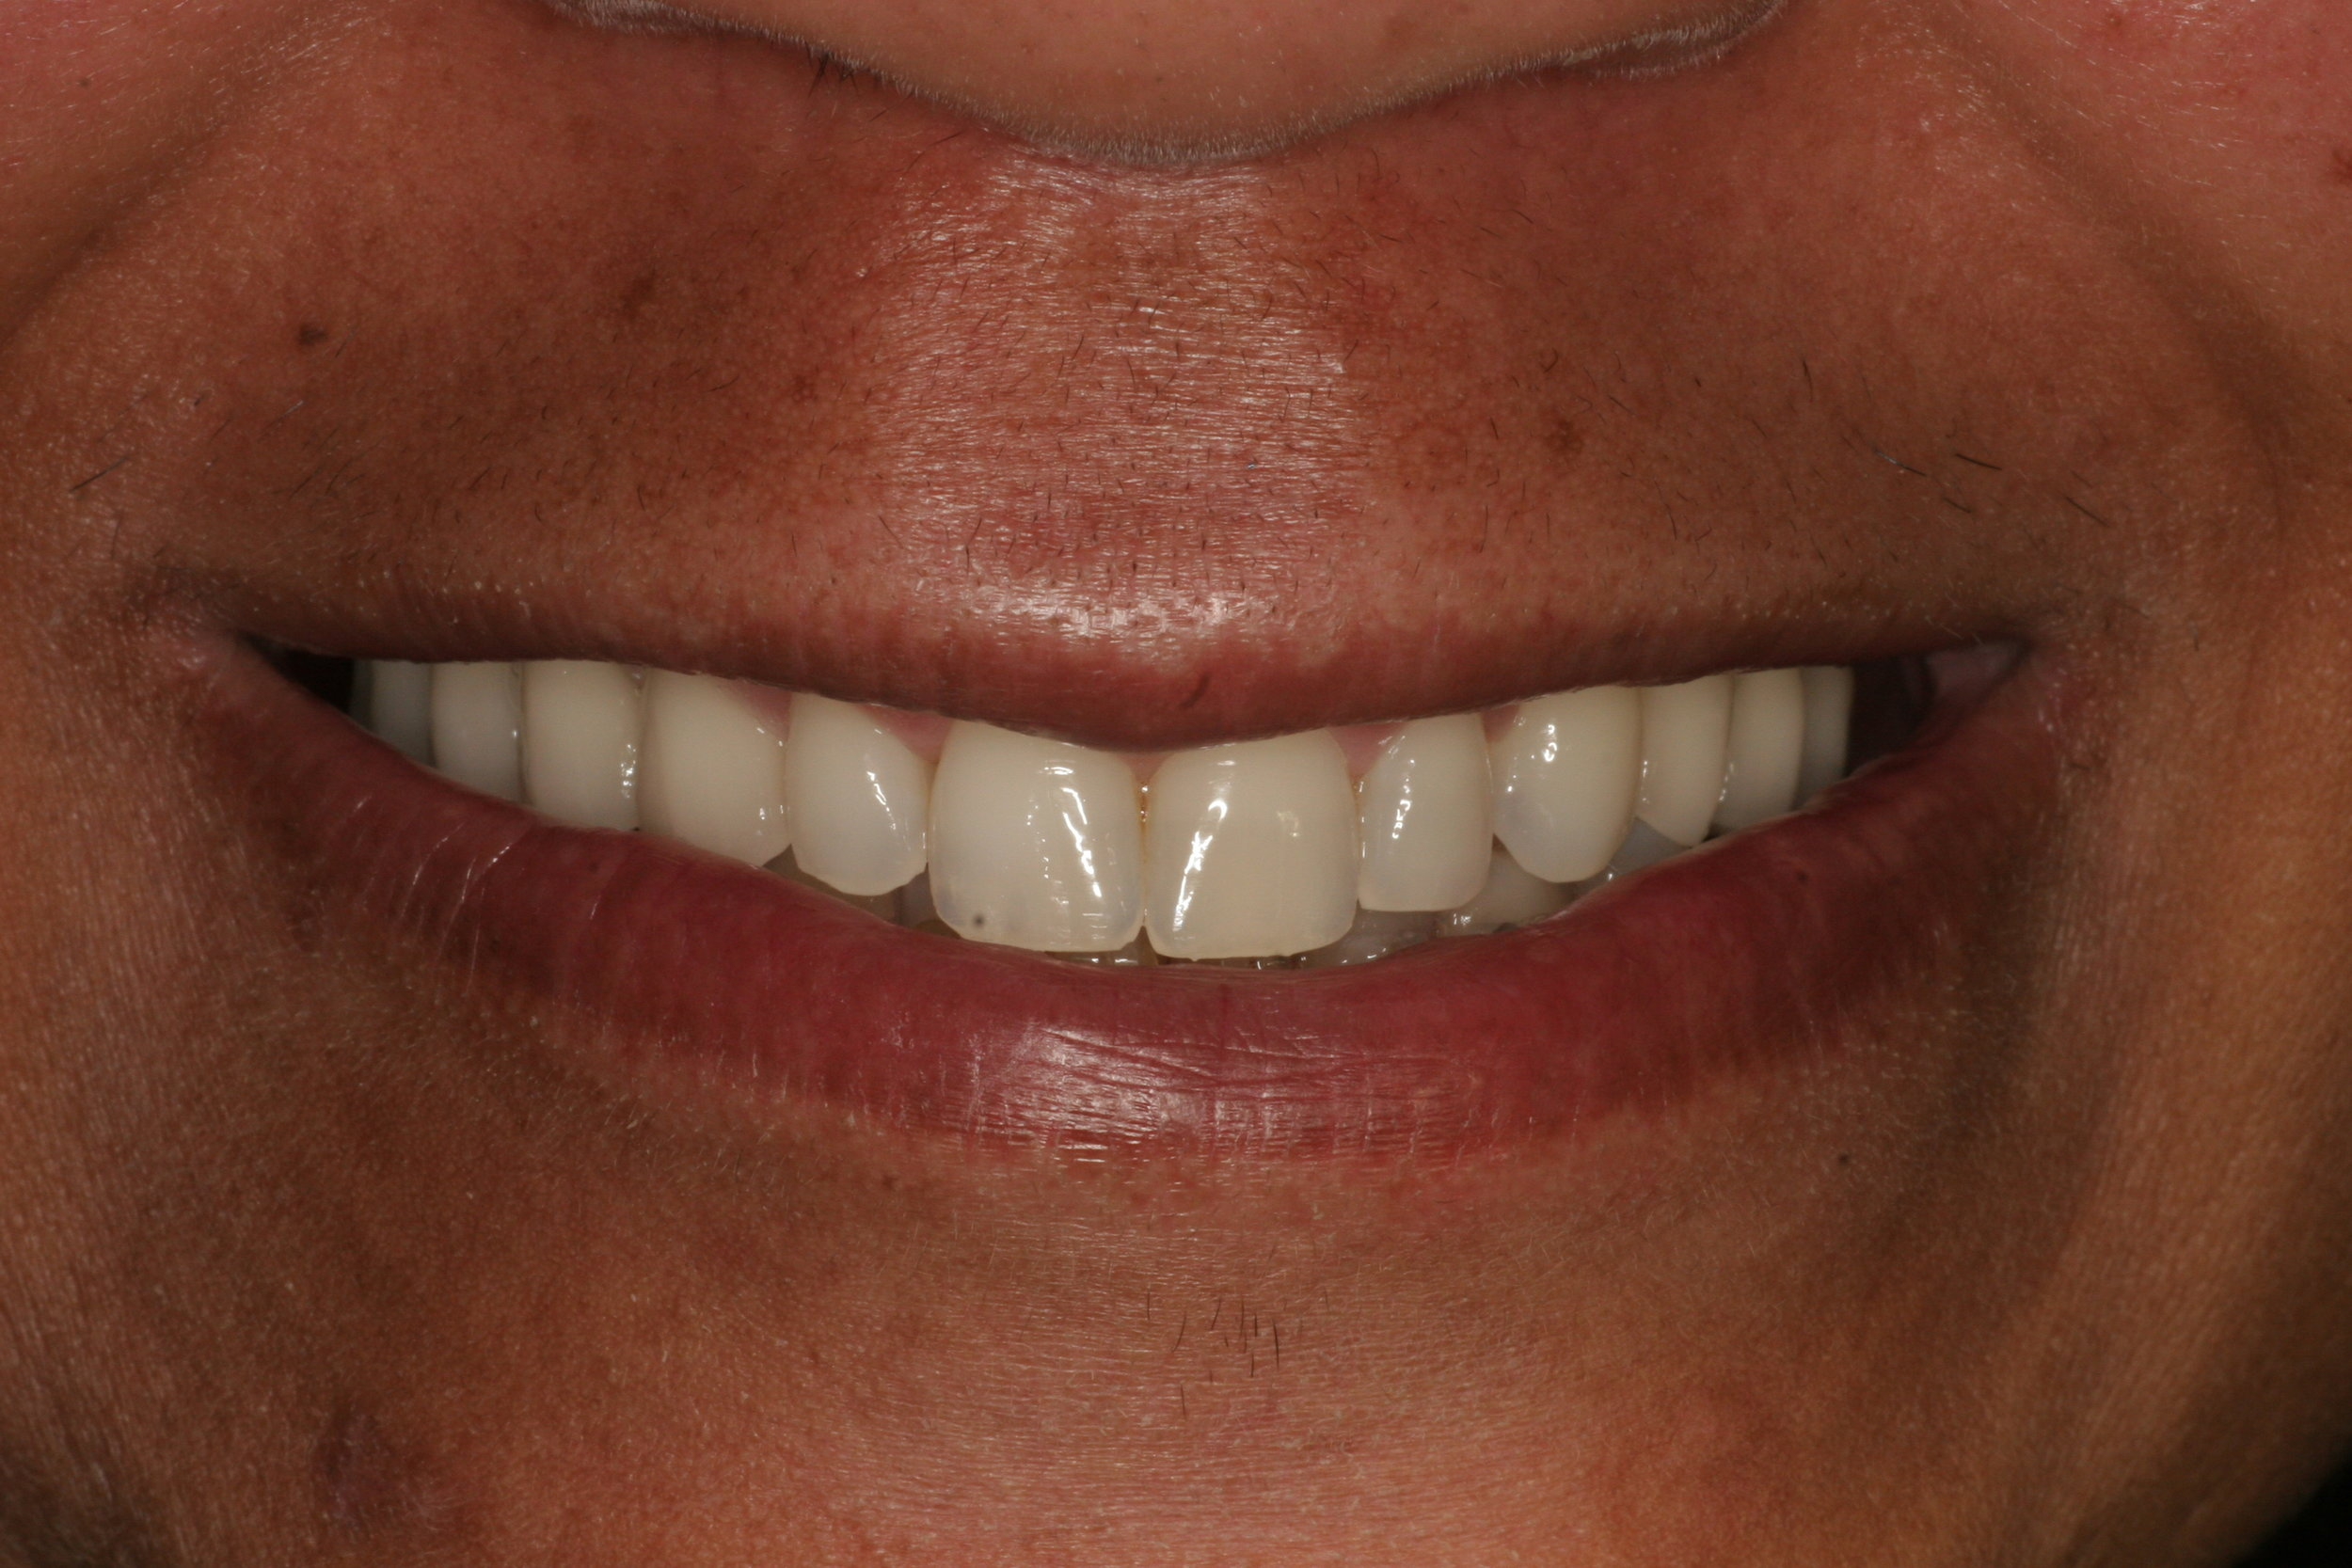 We placed 6 dental implants on this patient's left and right sides and used fixed bridges to restore her smile.